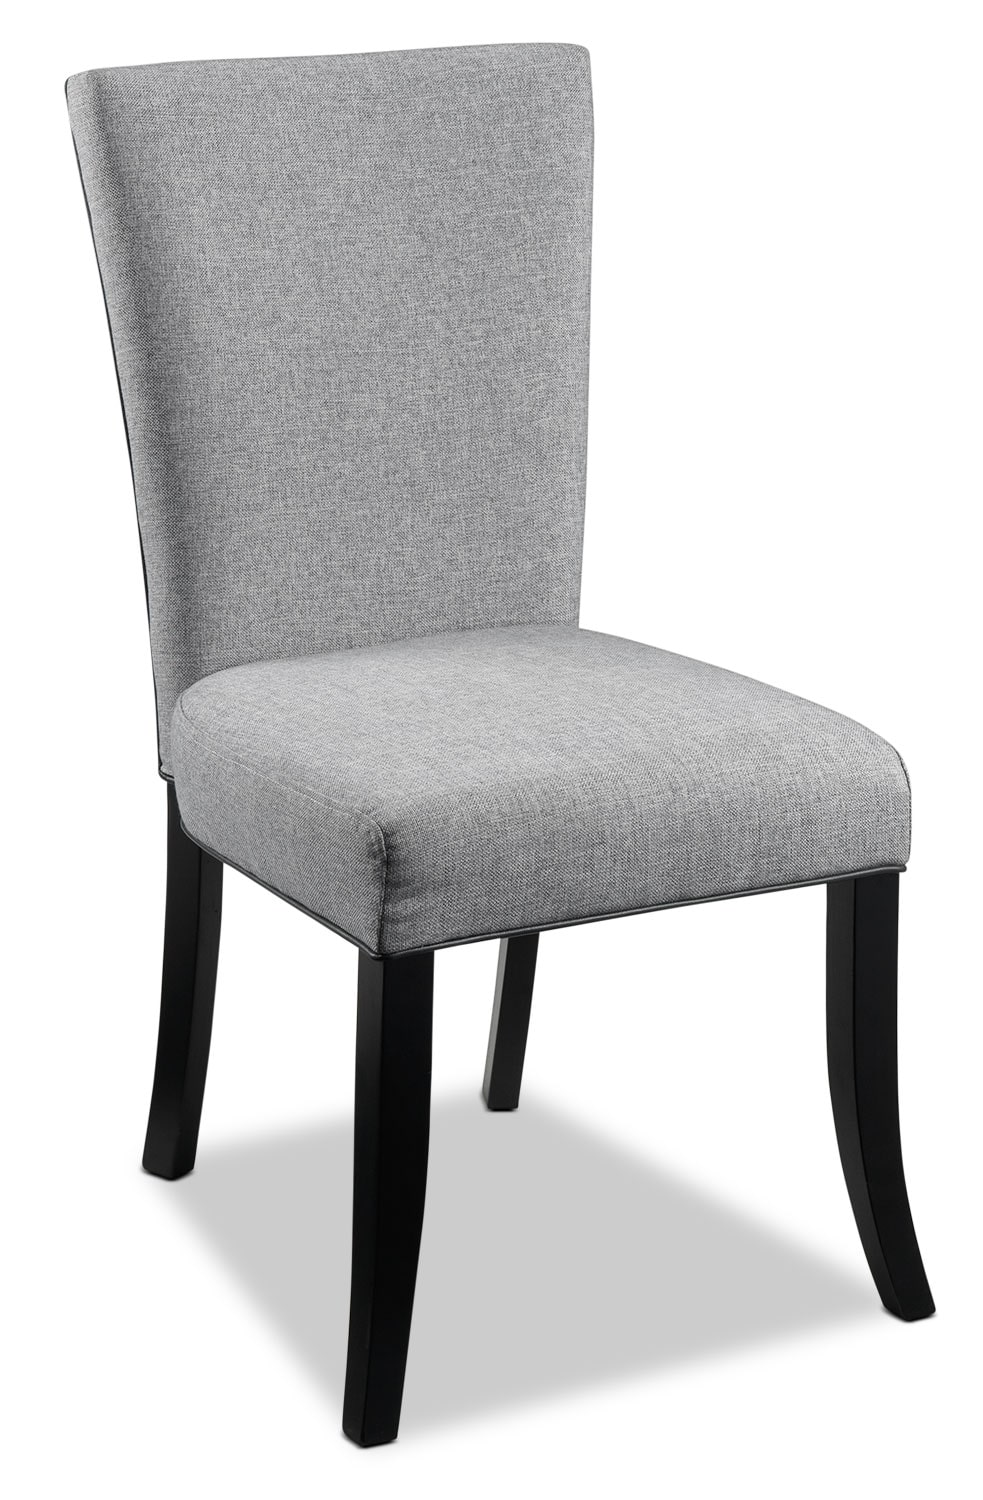 Astro Side Chair - Grey